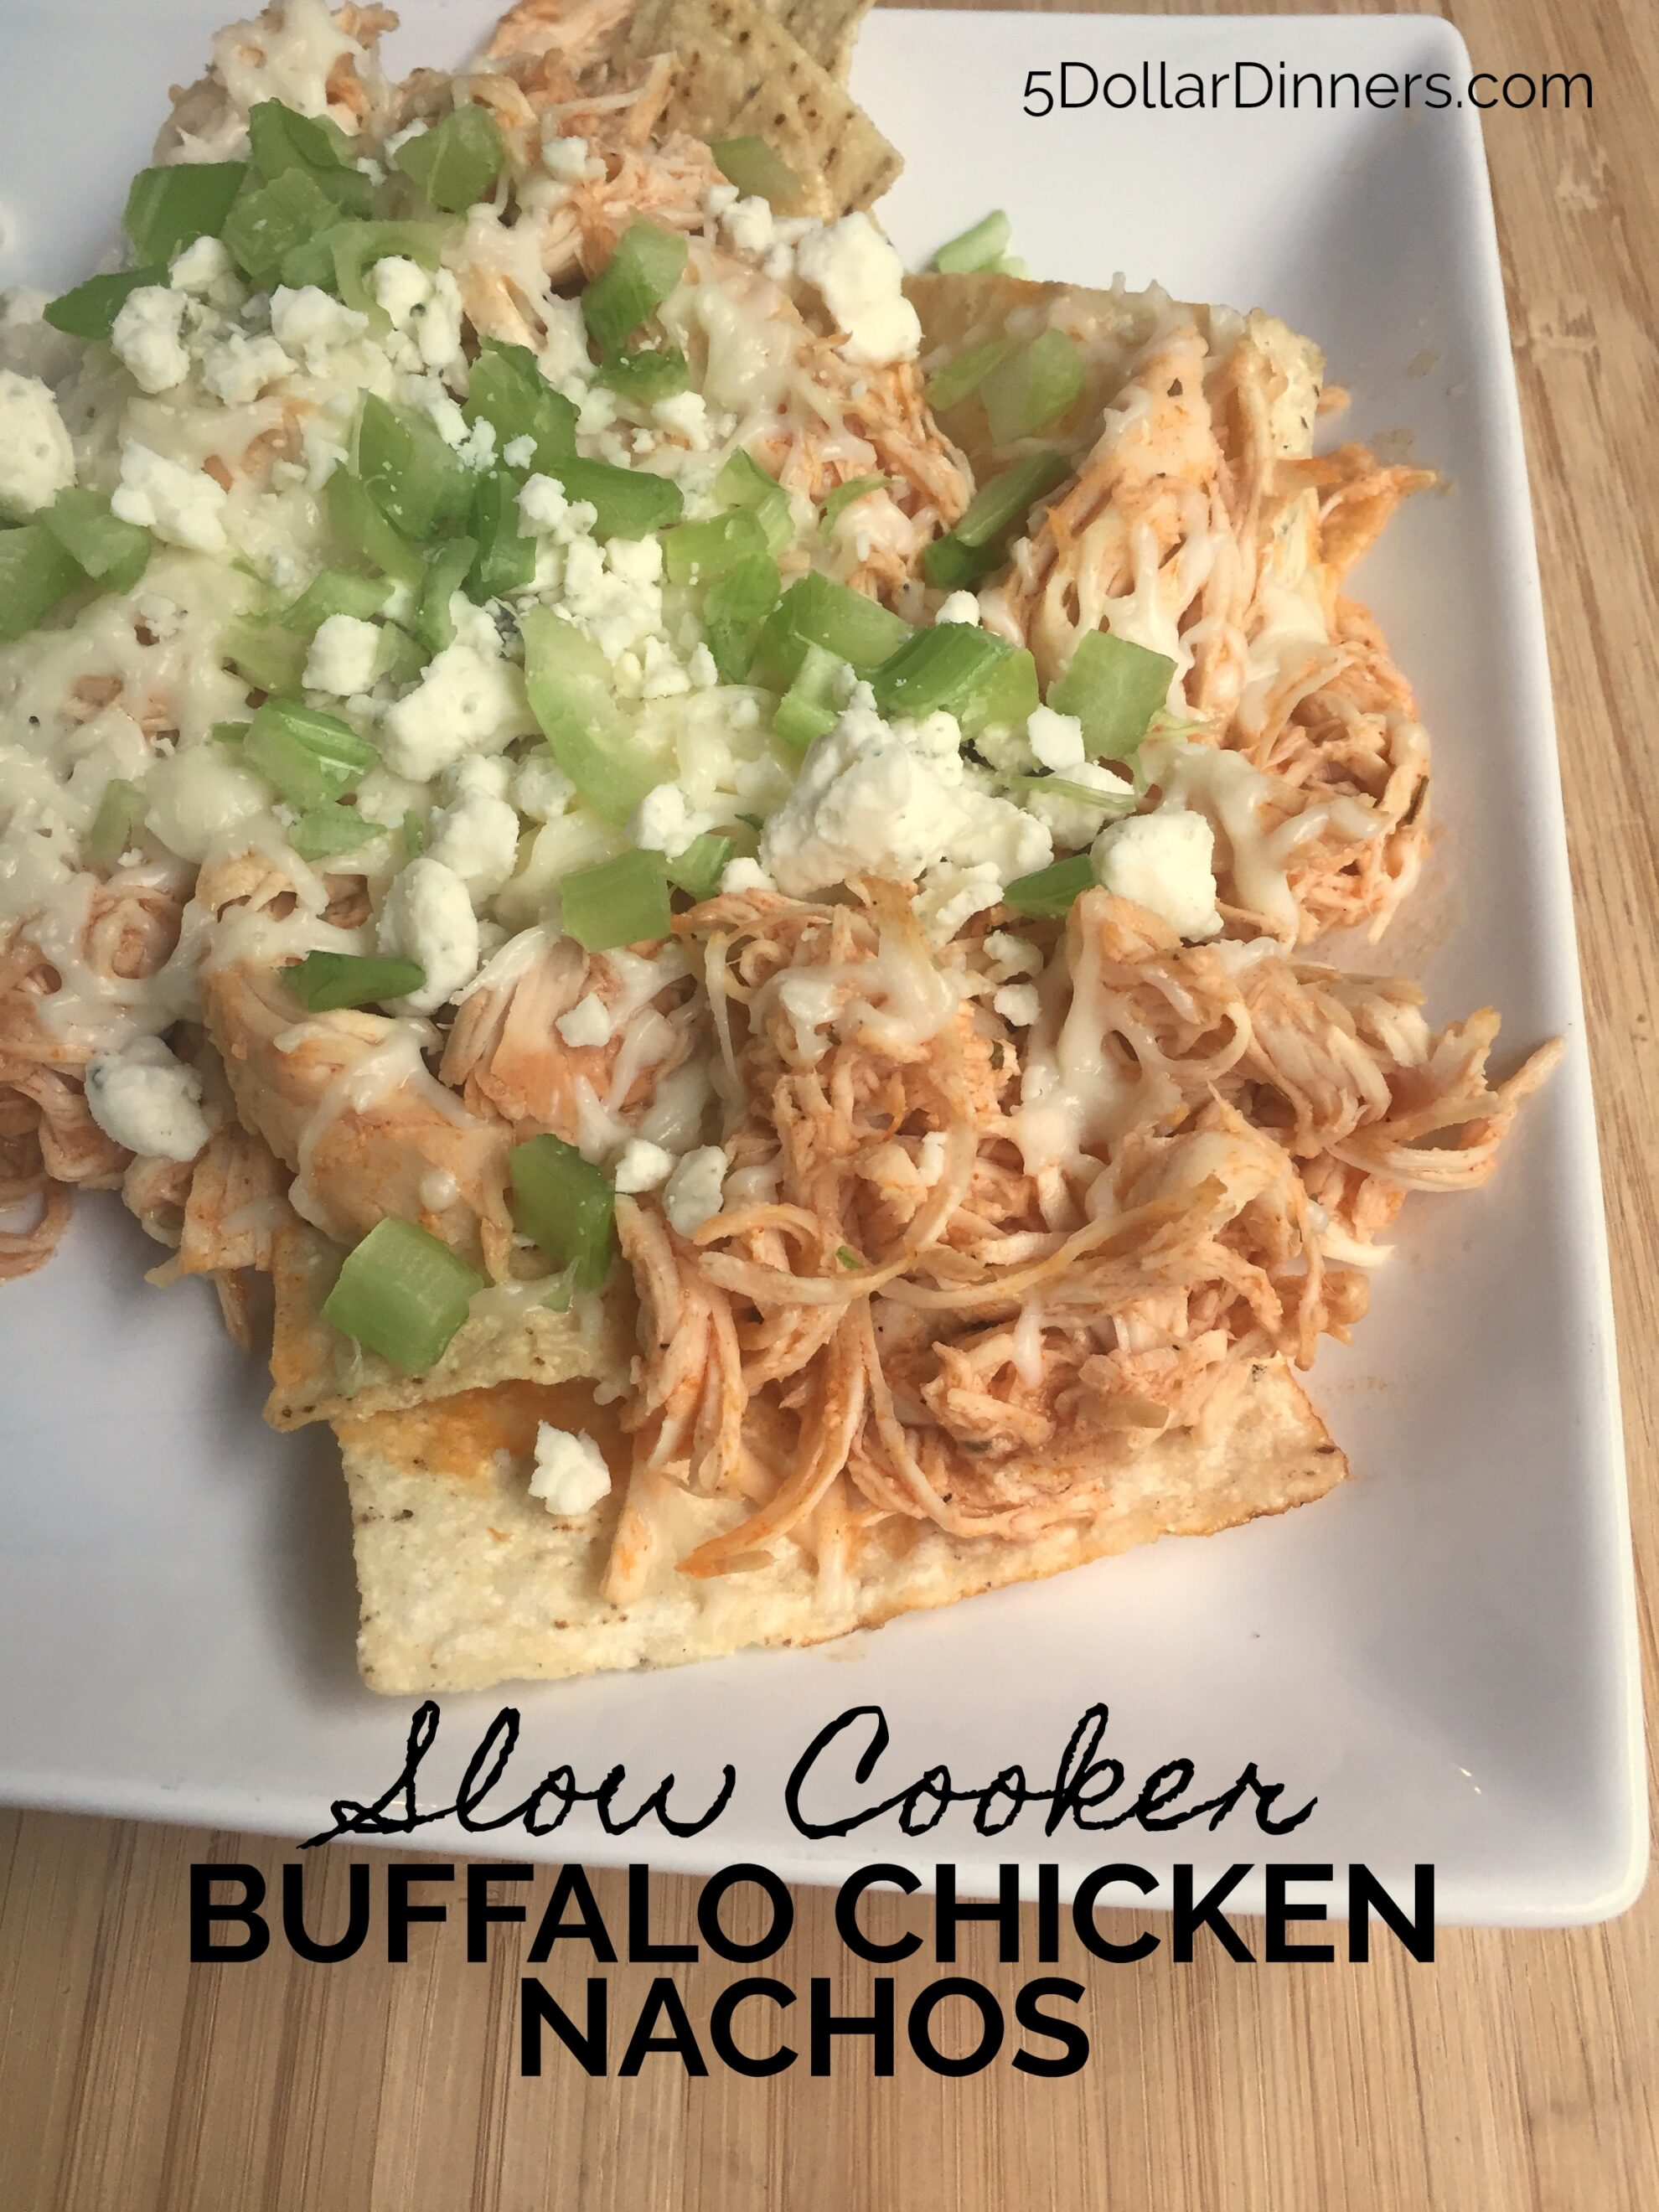 Slow Cooker Buffalo Chicken Nachos